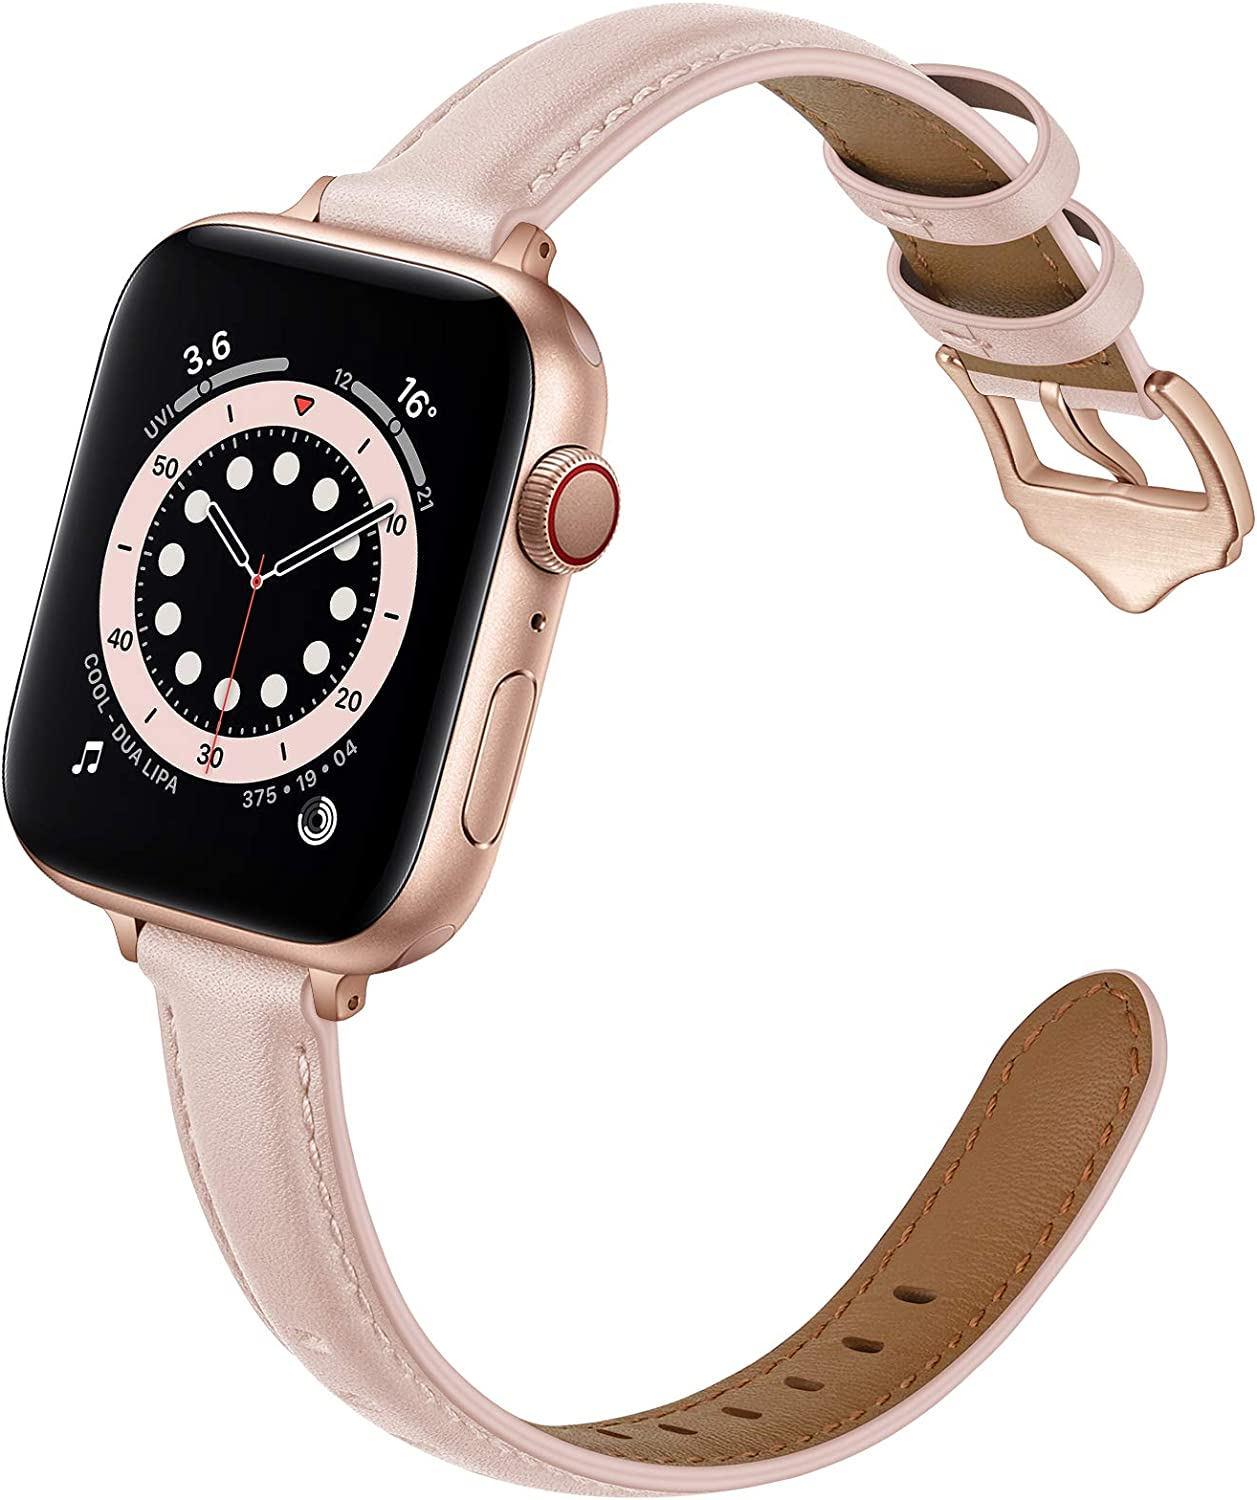 OUHENG Compatible with Apple Watch Bands 40mm 38mm 44mm 42mm, Women Slim Thin Genuine Leather Replacement Strap for iWatch SE Series 6 5 4 3 2 1 (Pink Sand/Rose Gold, 40mm 38mm)